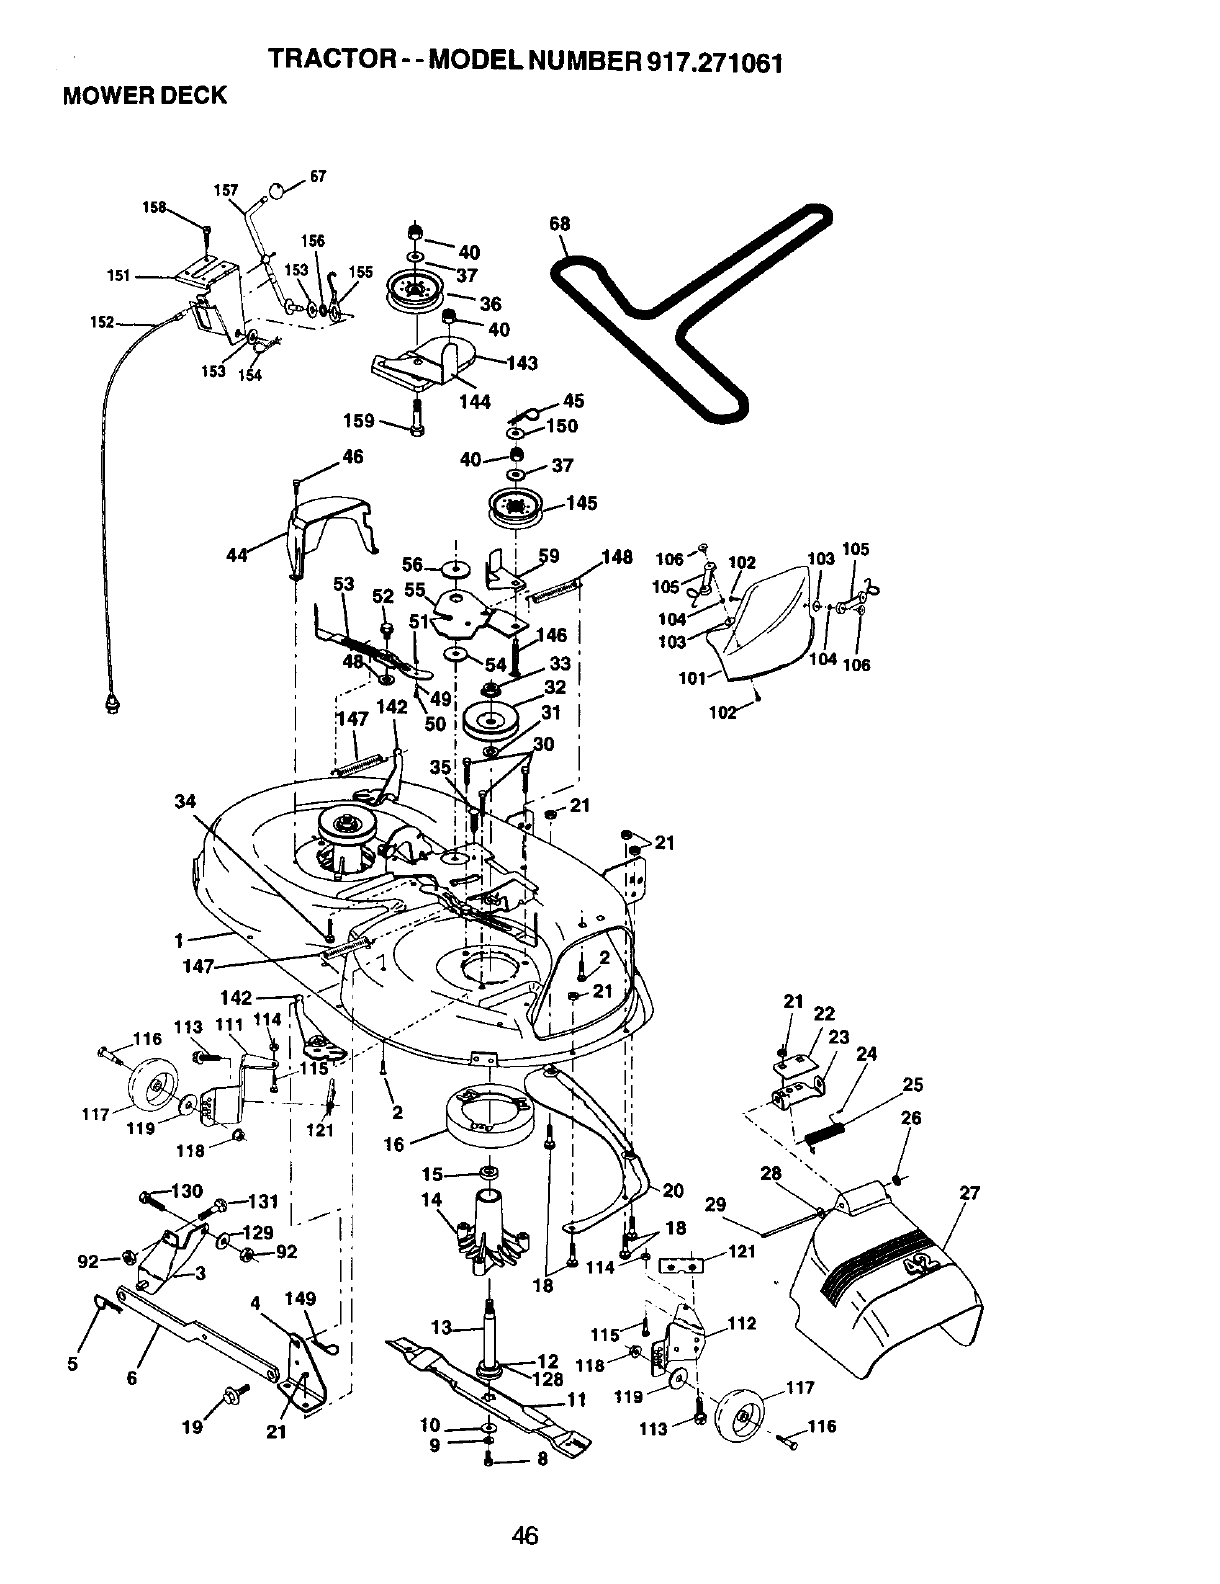 Page 46 of Craftsman Lawn Mower 917.271061 User Guide